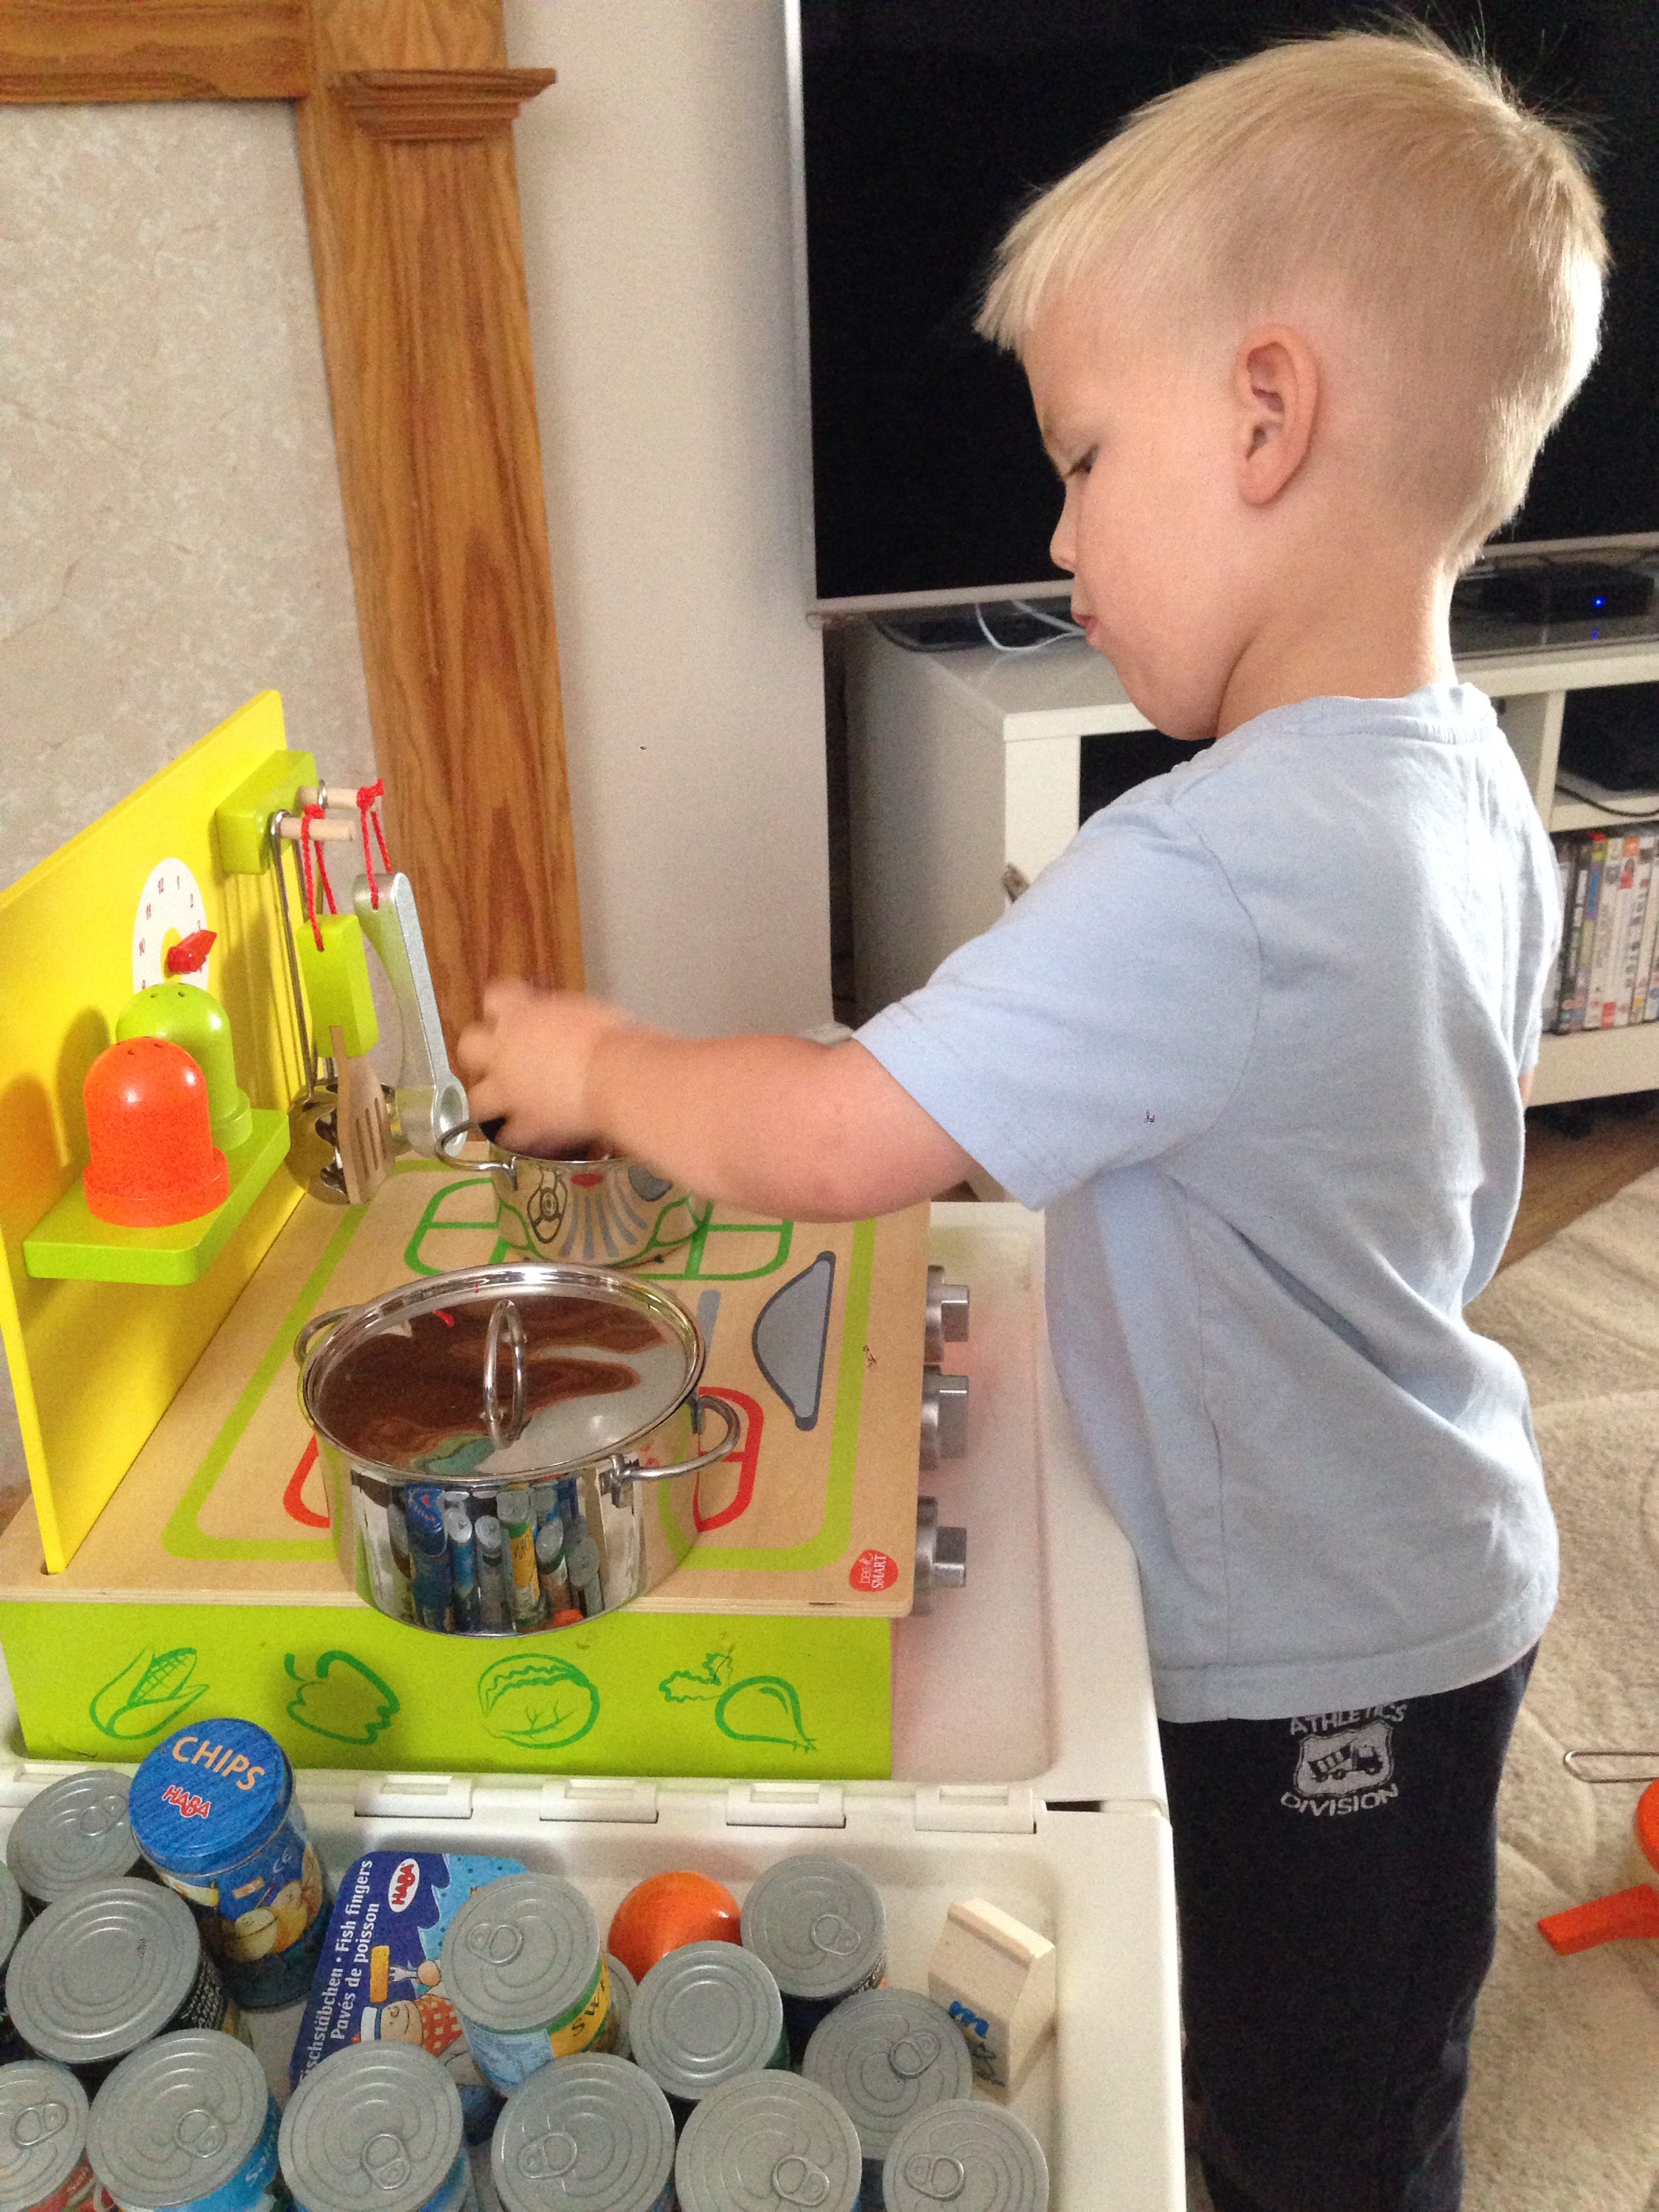 james baking in the toy kitchen